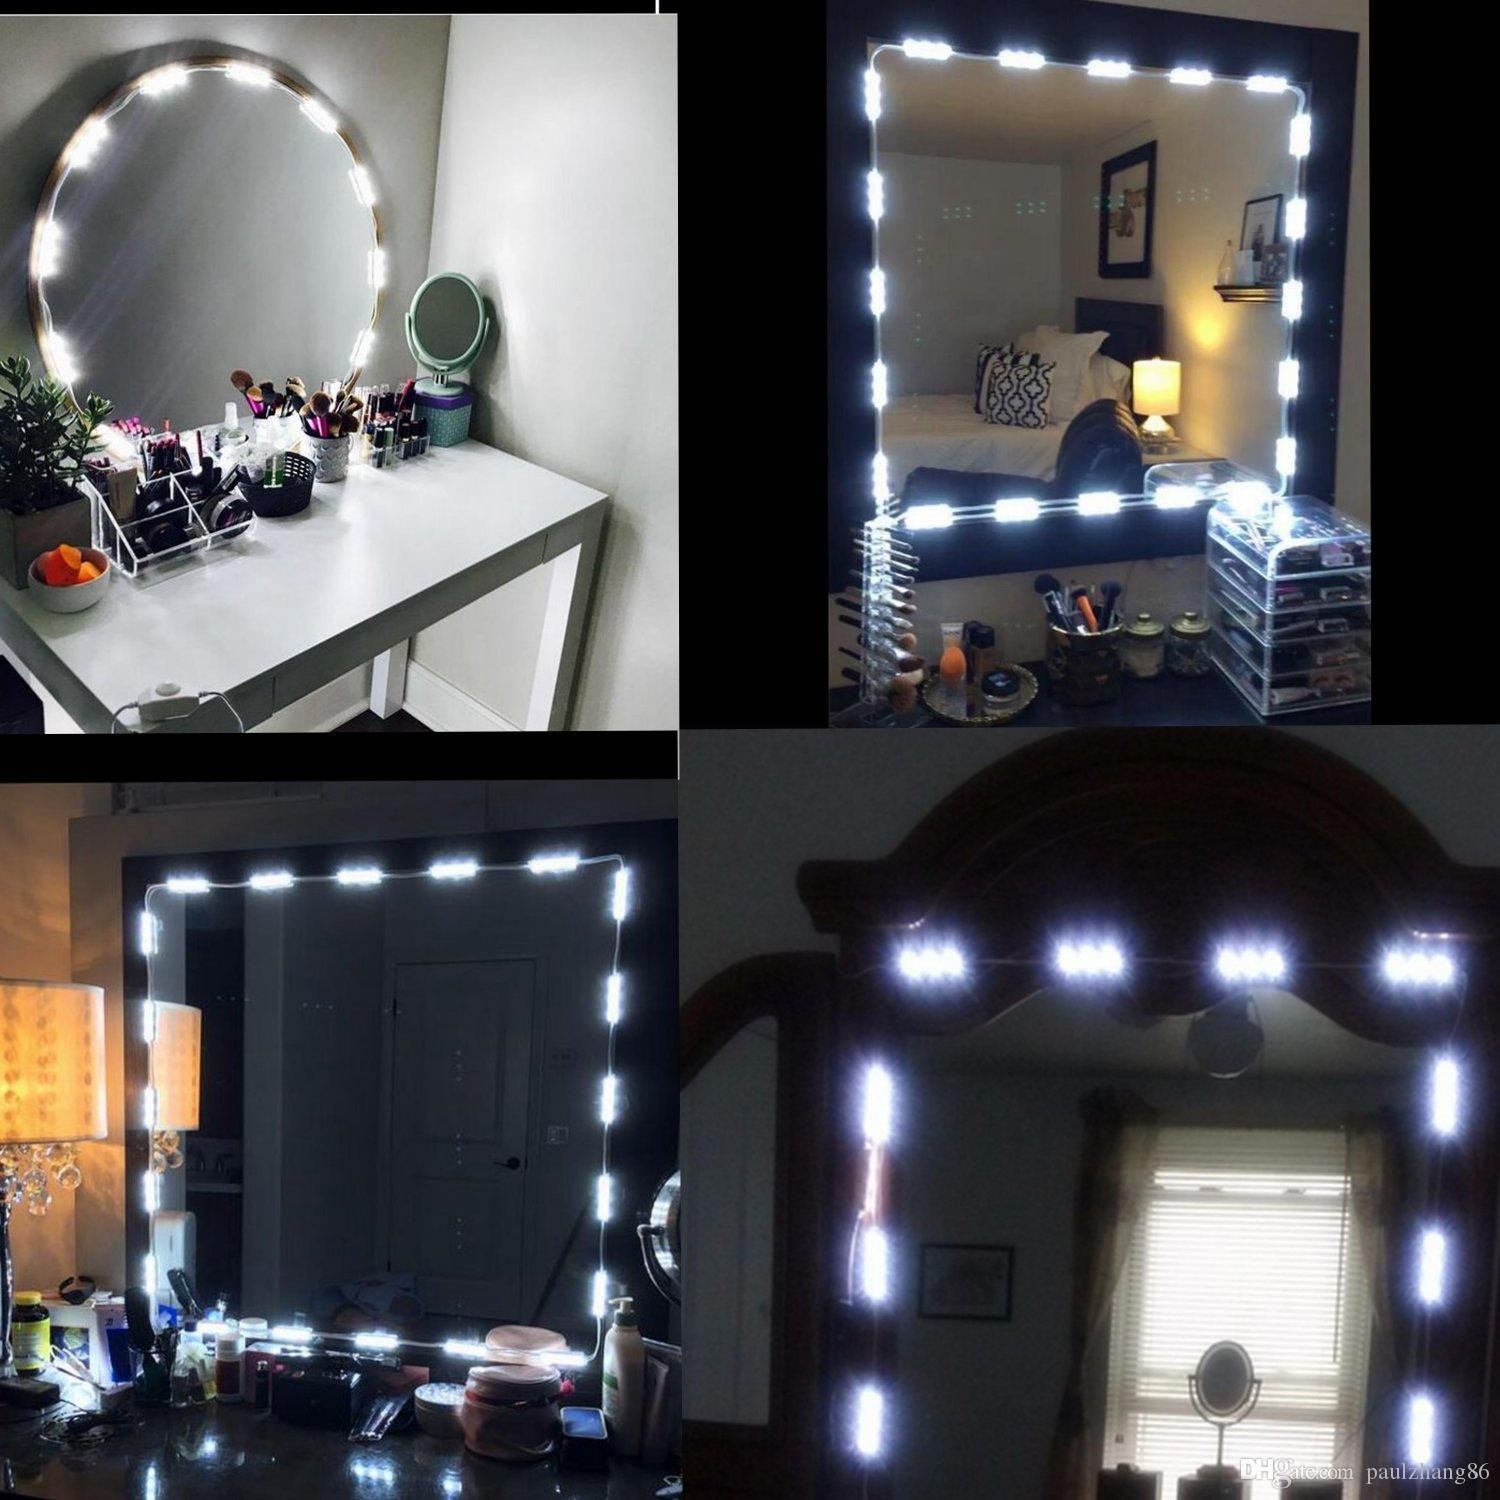 2020 Makeup Vanity Mirror Lights Dimmable 60 Leds 9 8ft Diy Led Make Up Light Kit 2800lm For Cosmetic Mirrors Kitchen With Remote From Paulzhang86 15 76 Dhgate Com